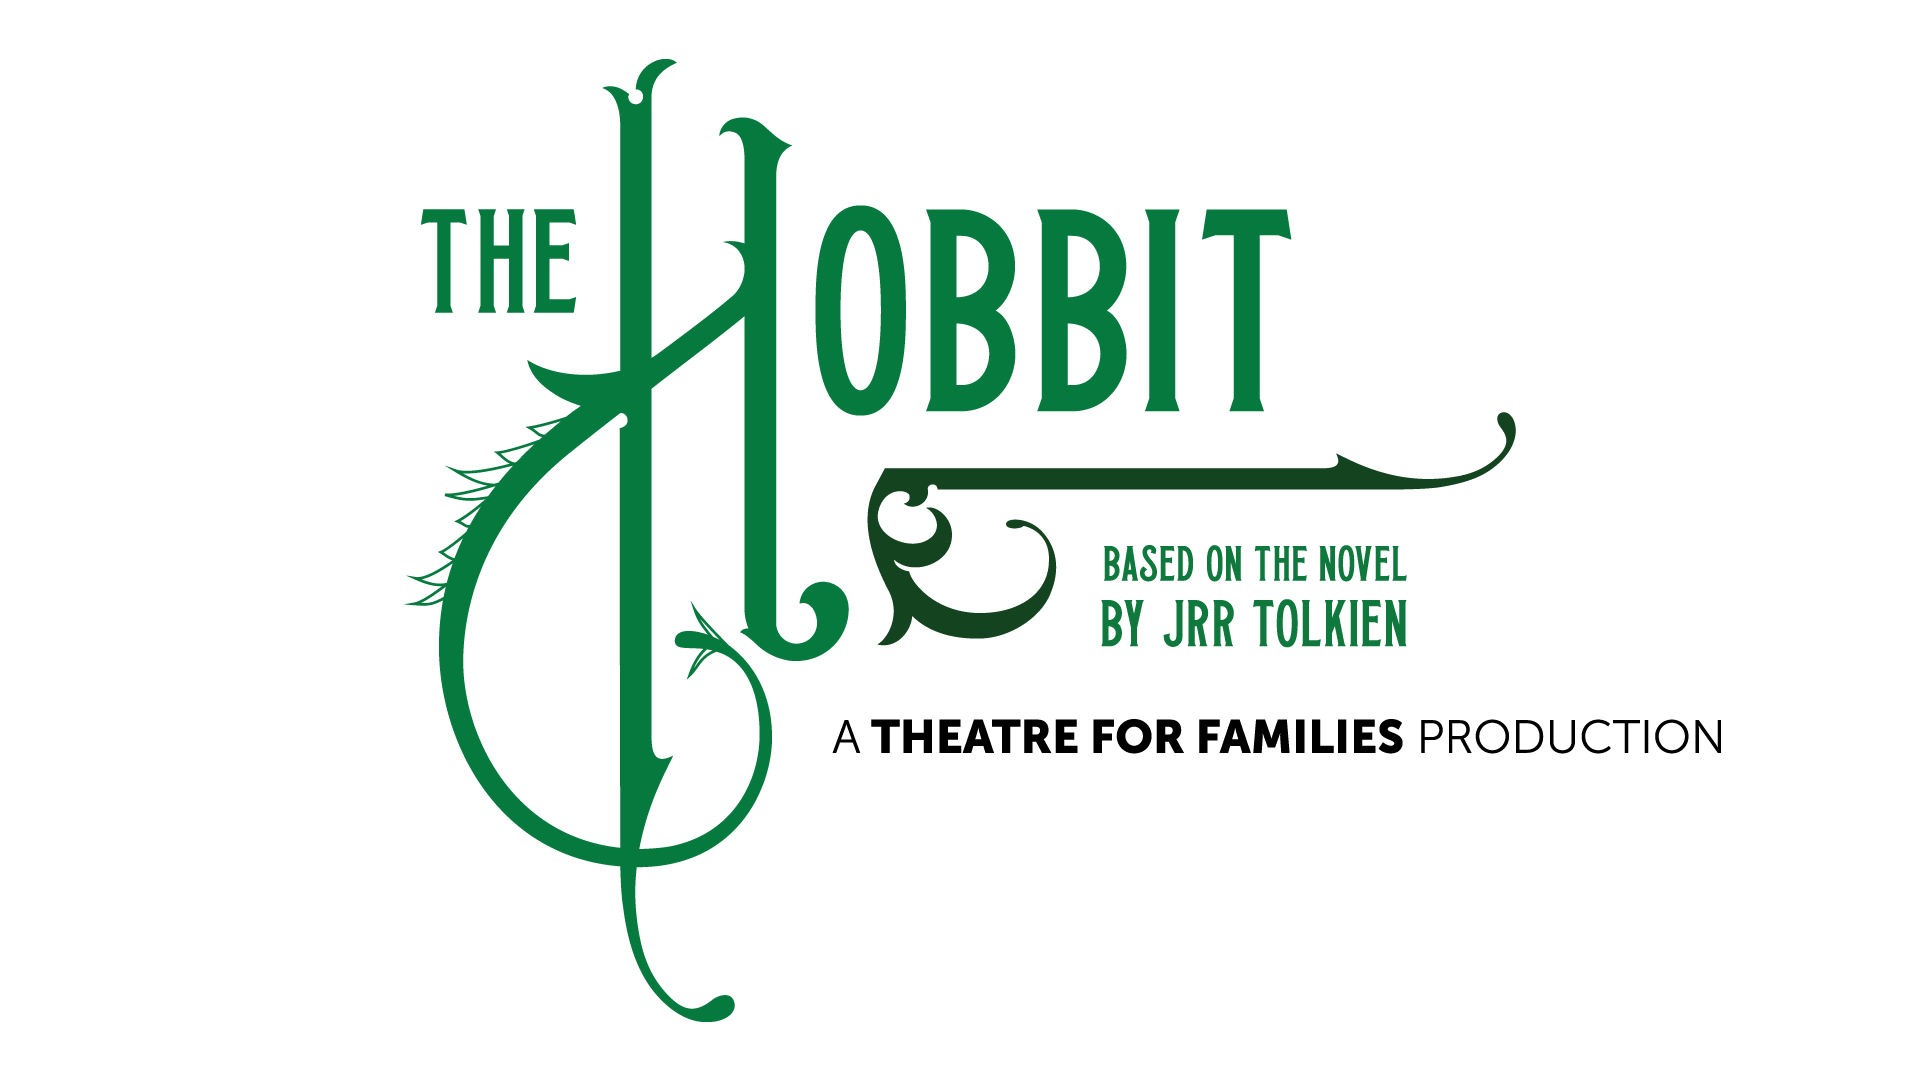 TheHobbit_TFF_color.png